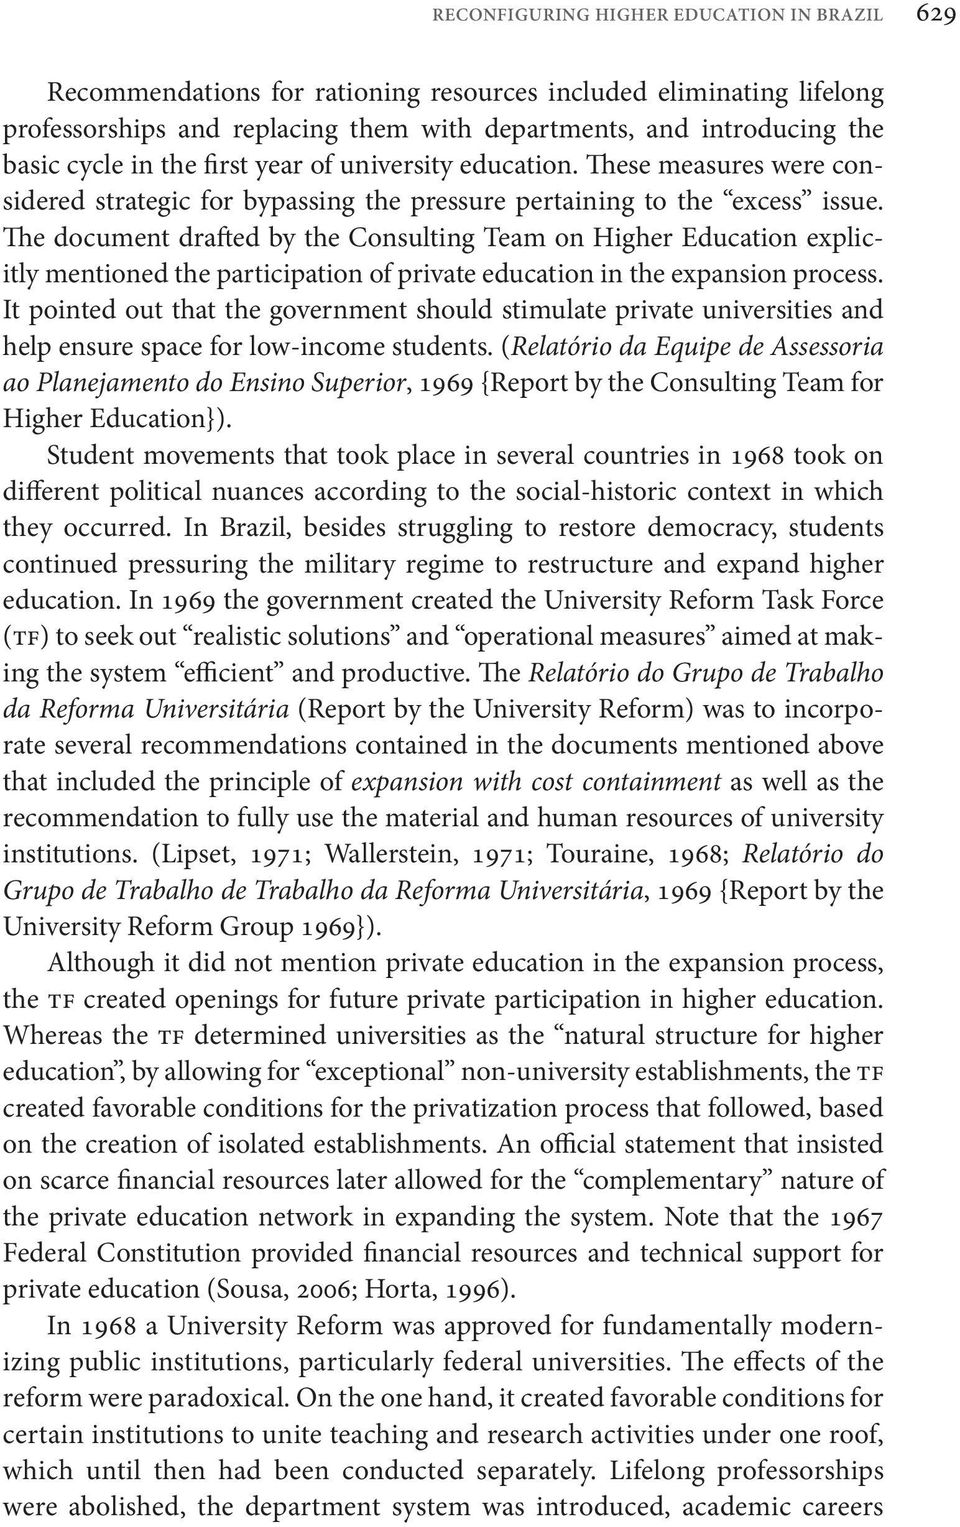 The document drafted by the Consulting Team on Higher Education explicitly mentioned the participation of private education in the expansion process.